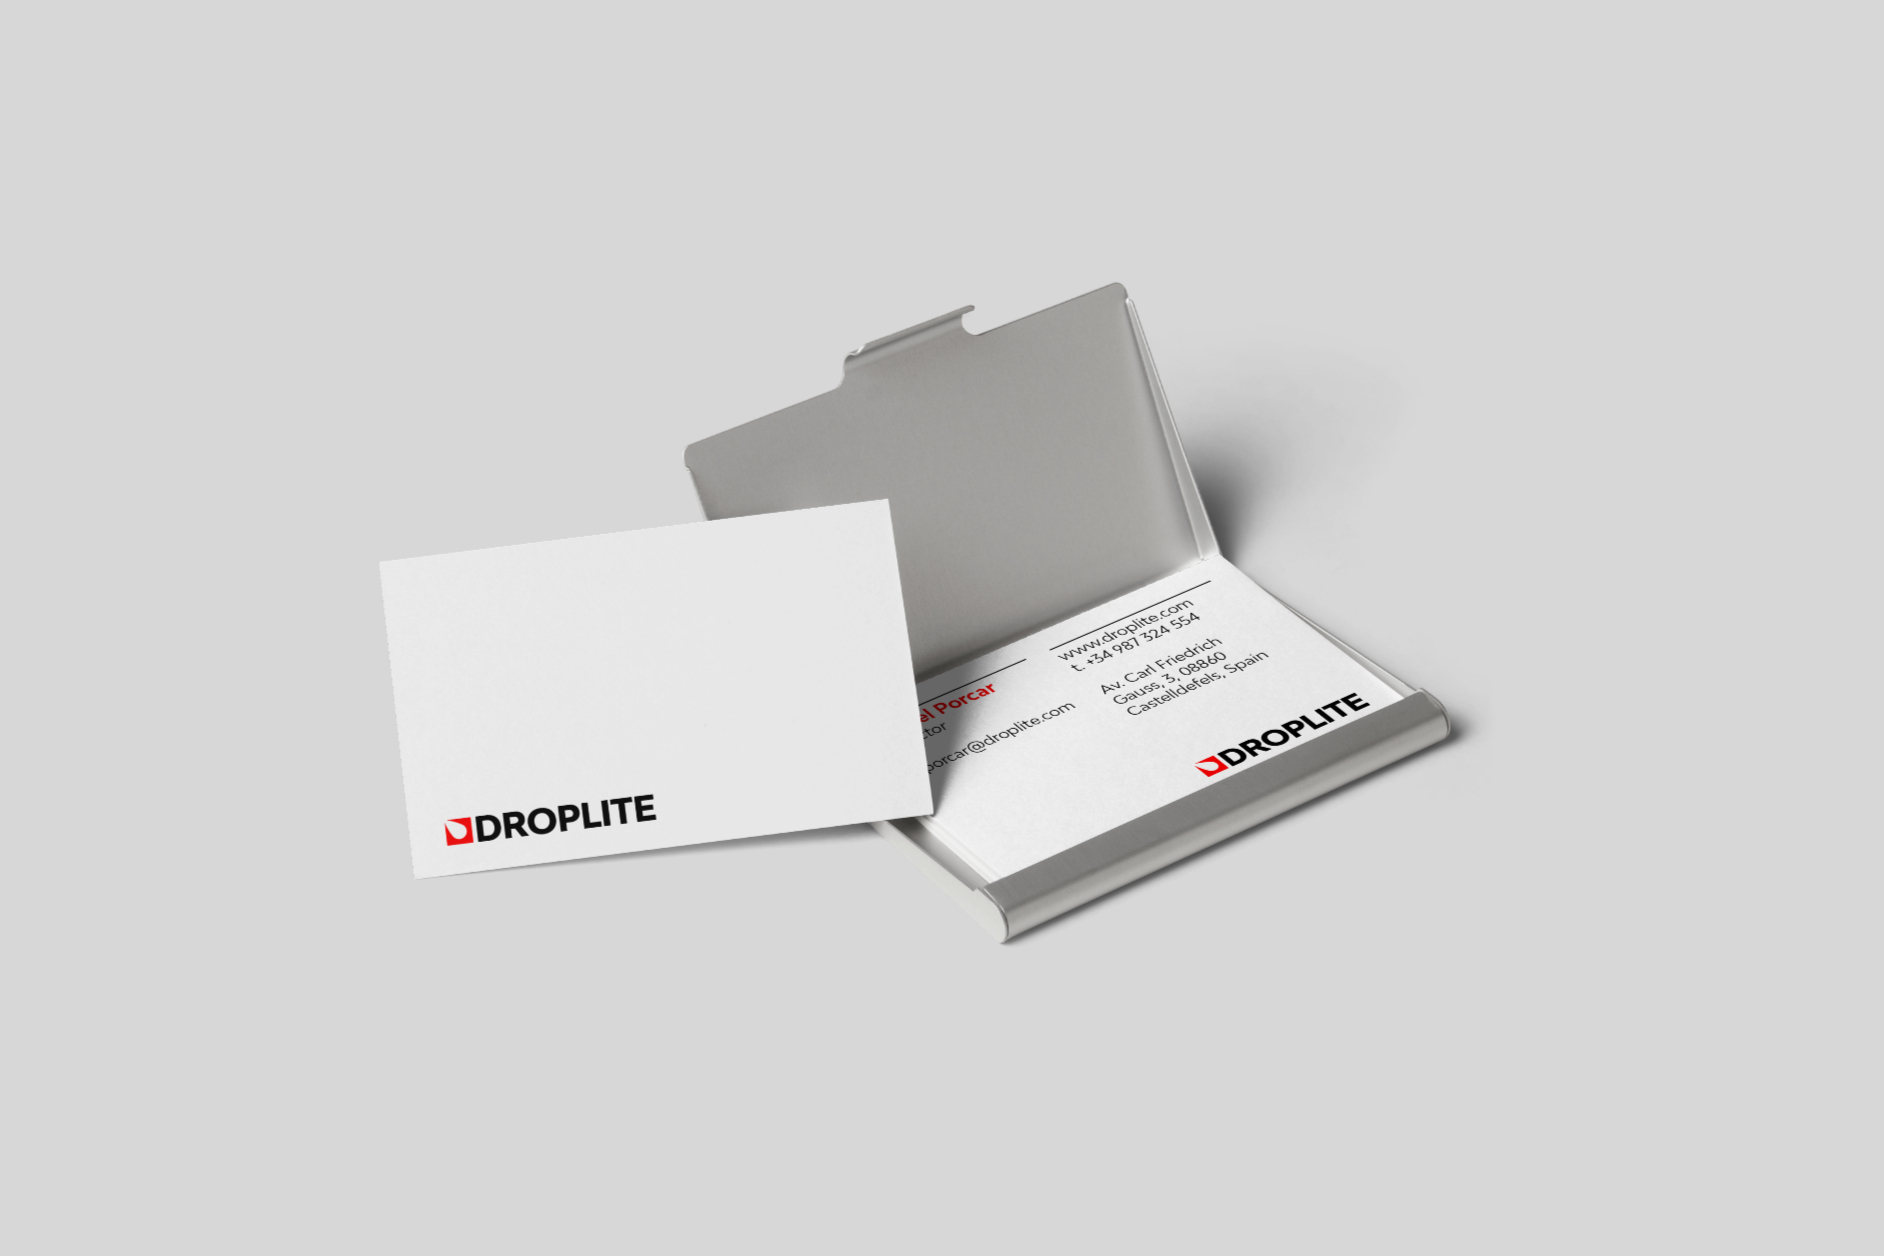 Droplite-business-card-mockup-Daniel-Cavalcanti